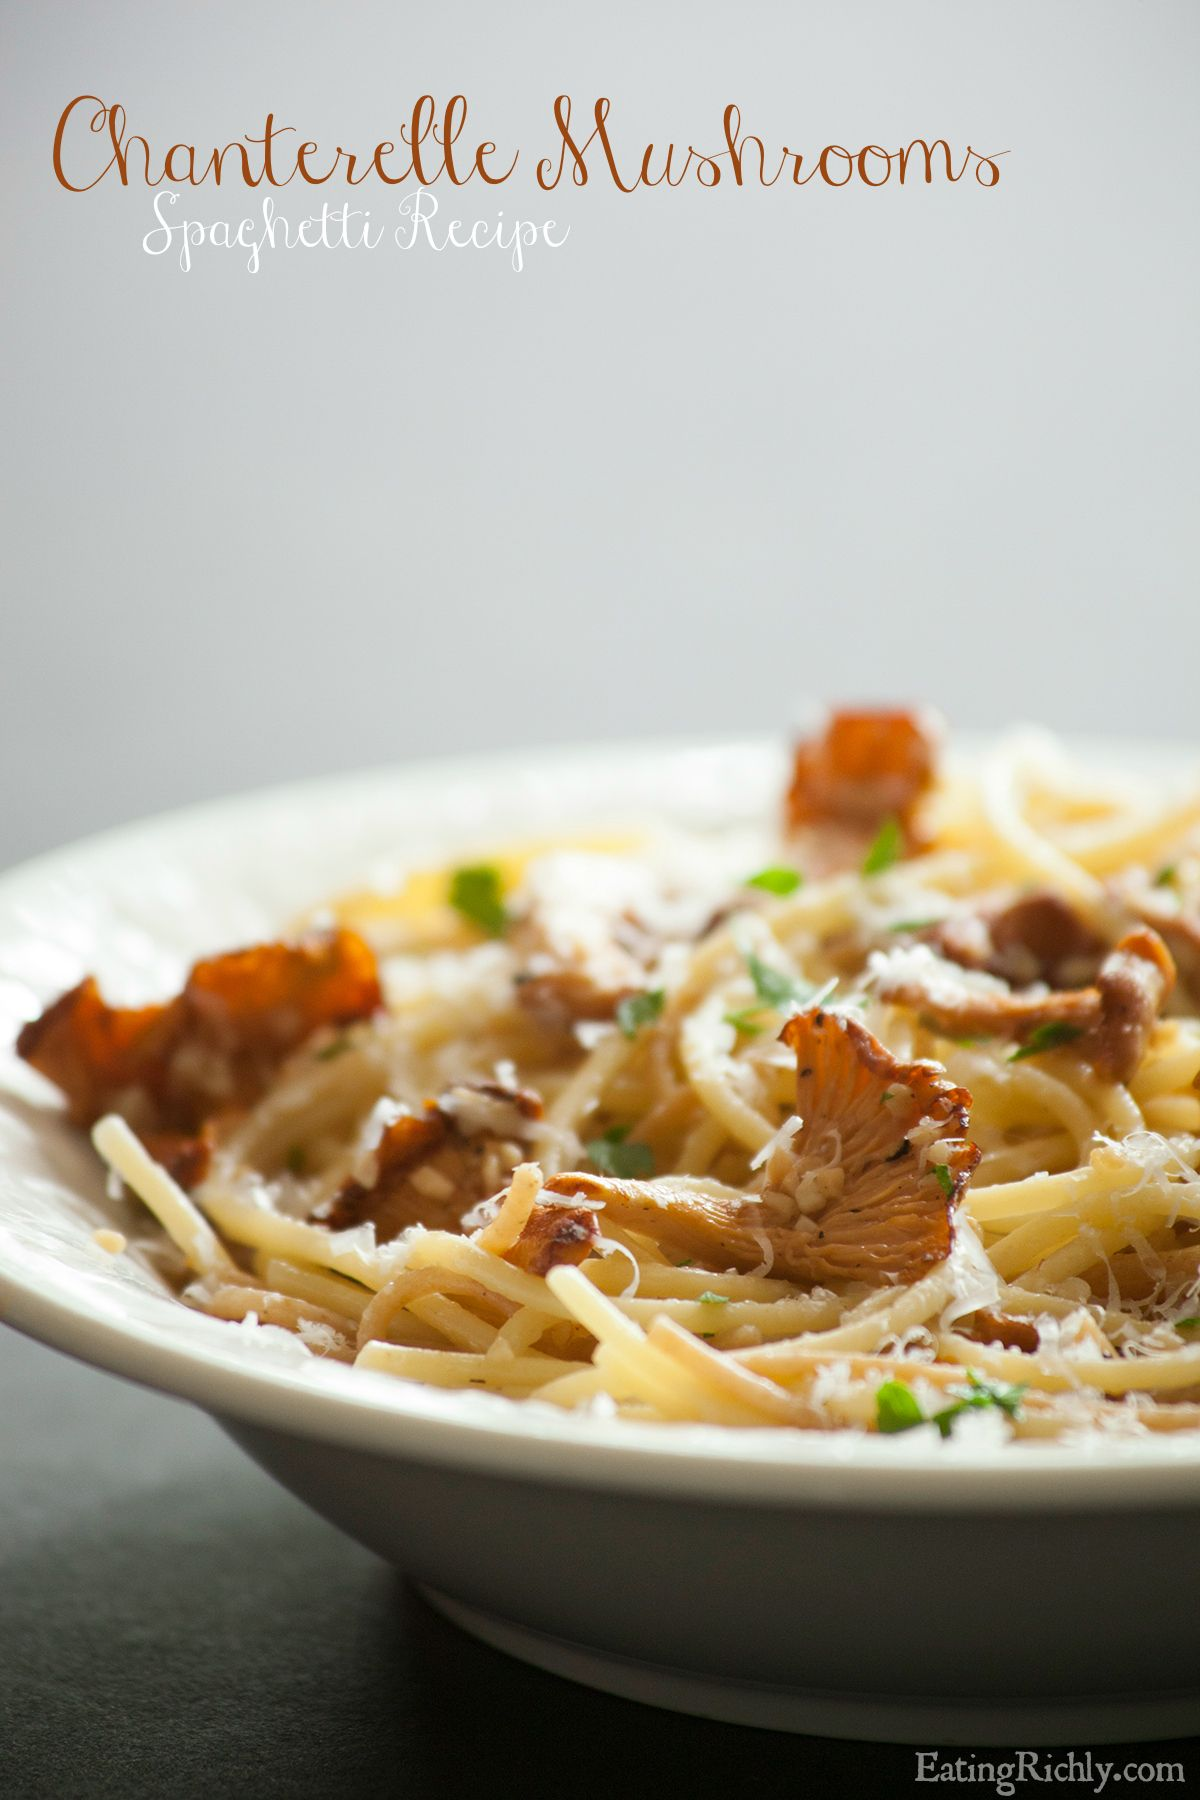 Pasta with bacon - Italian taste with Russian accent